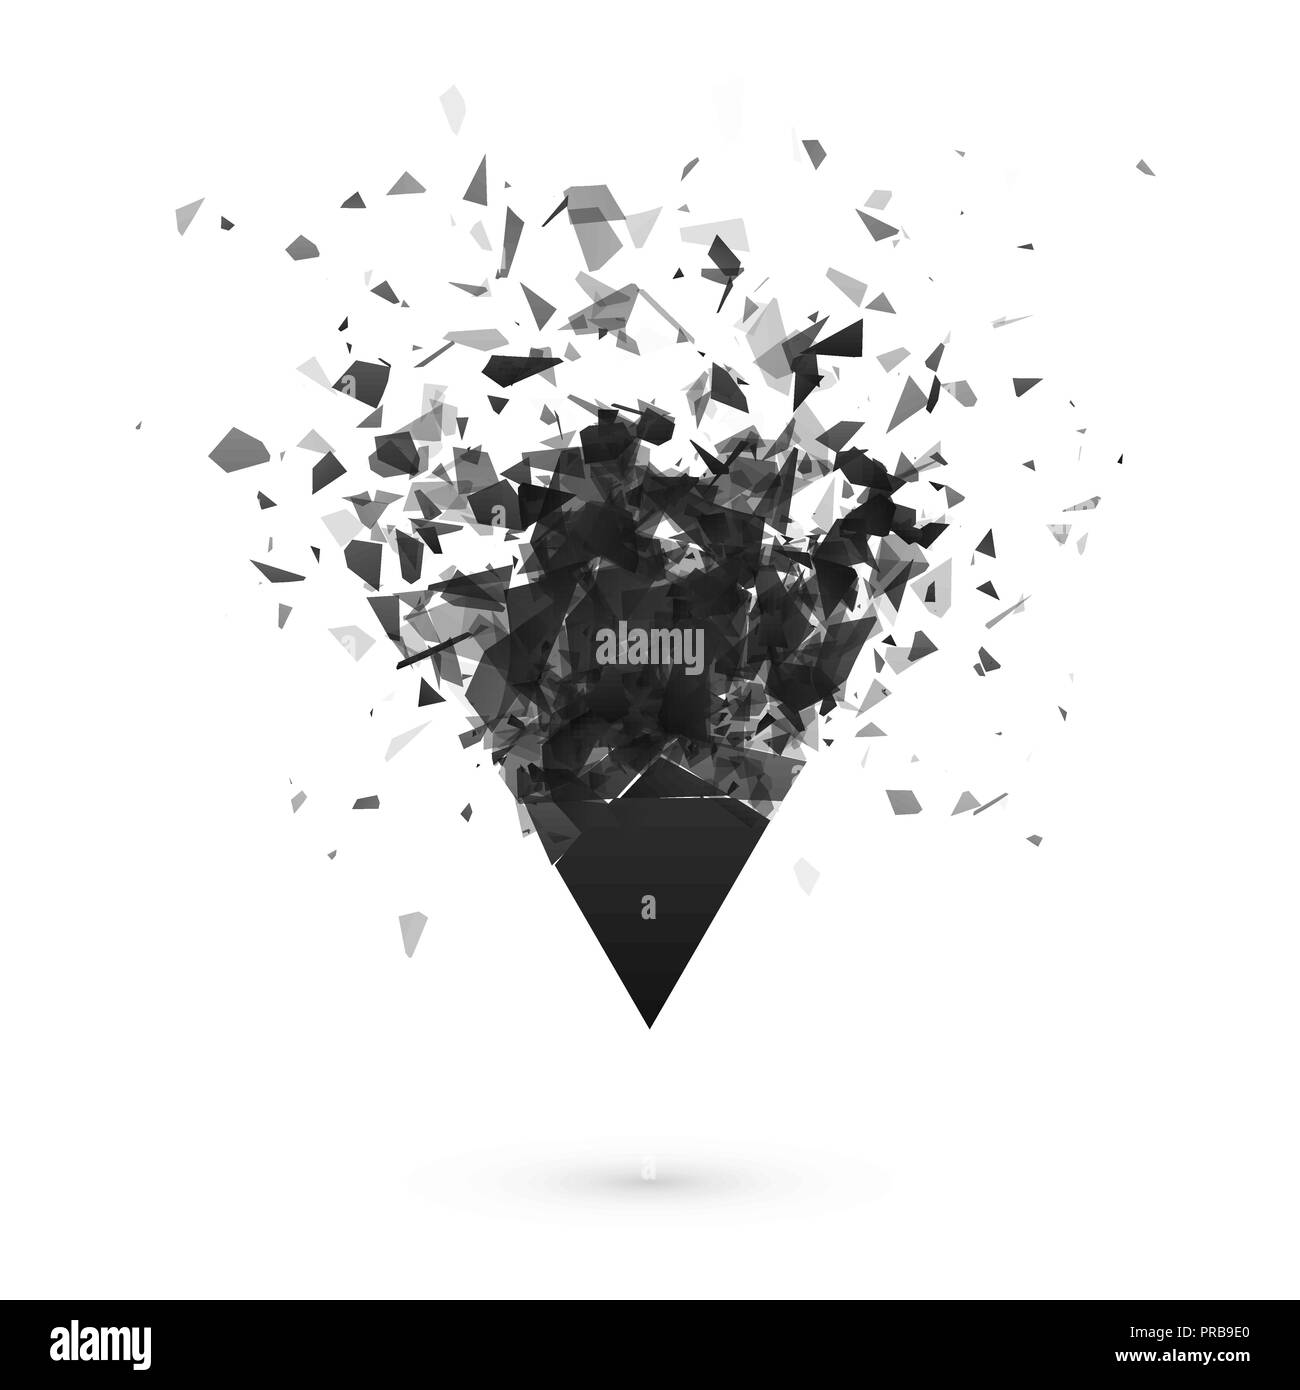 Explosion effect. Shatter dark triangle. Abstract cloud of pieces after explosion. Vector illustration isolated on transparent background - Stock Vector